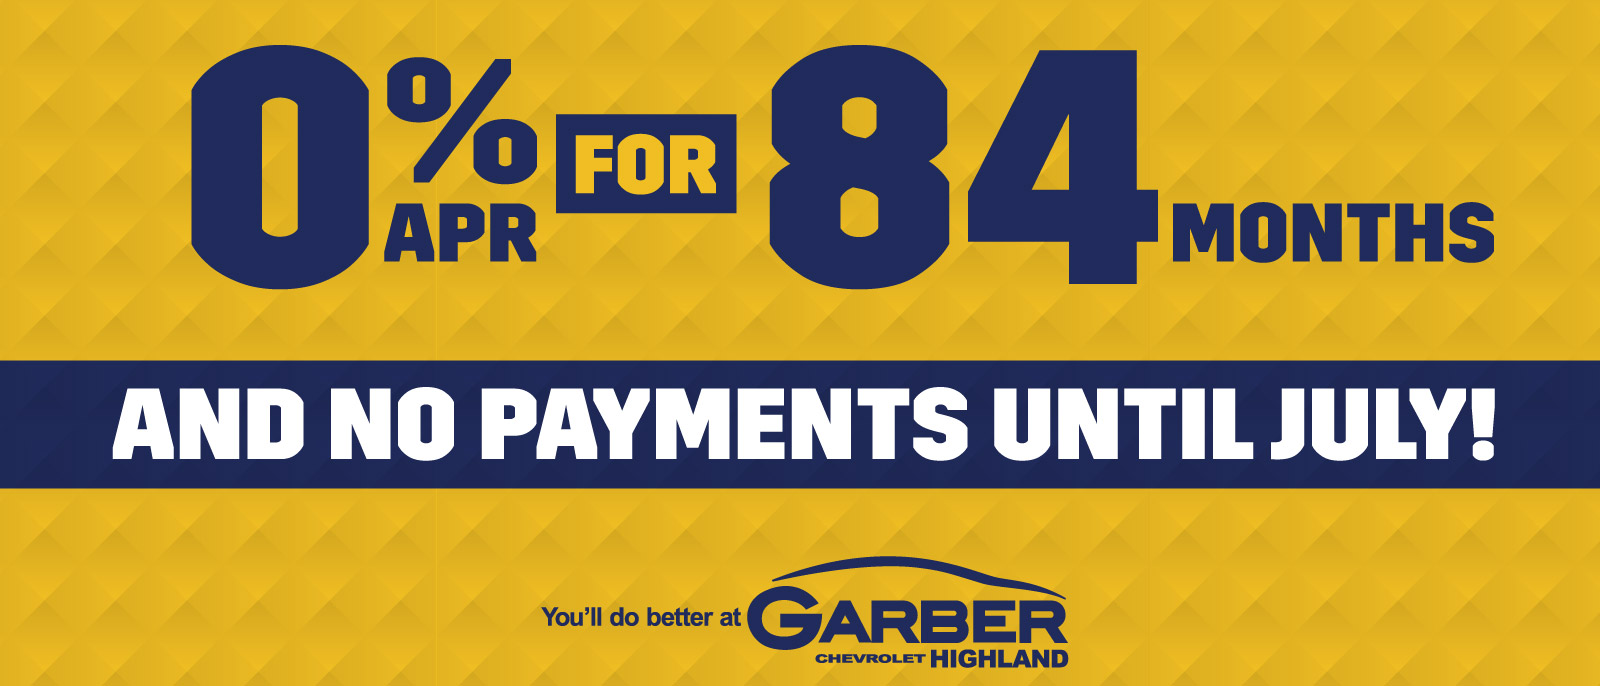 0% APR for 84 months AND NO PAYMENTS UNTIL JULY!